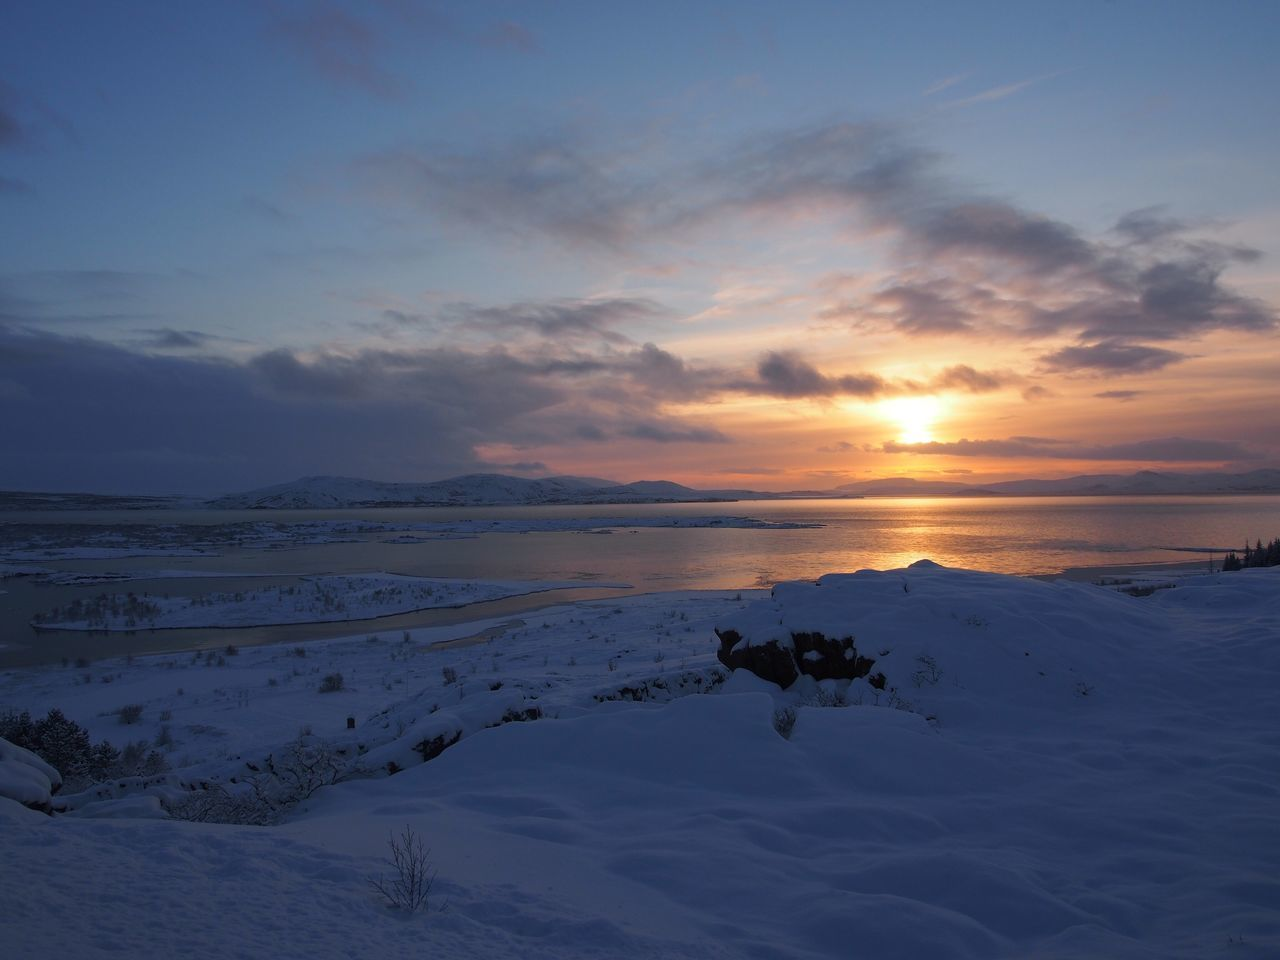 Beauty In Nature Winter Cold Temperature Nature Snow Sky Sunset Scenics Tranquil Scene Weather Tranquility Landscape Outdoors No People Day Iceland